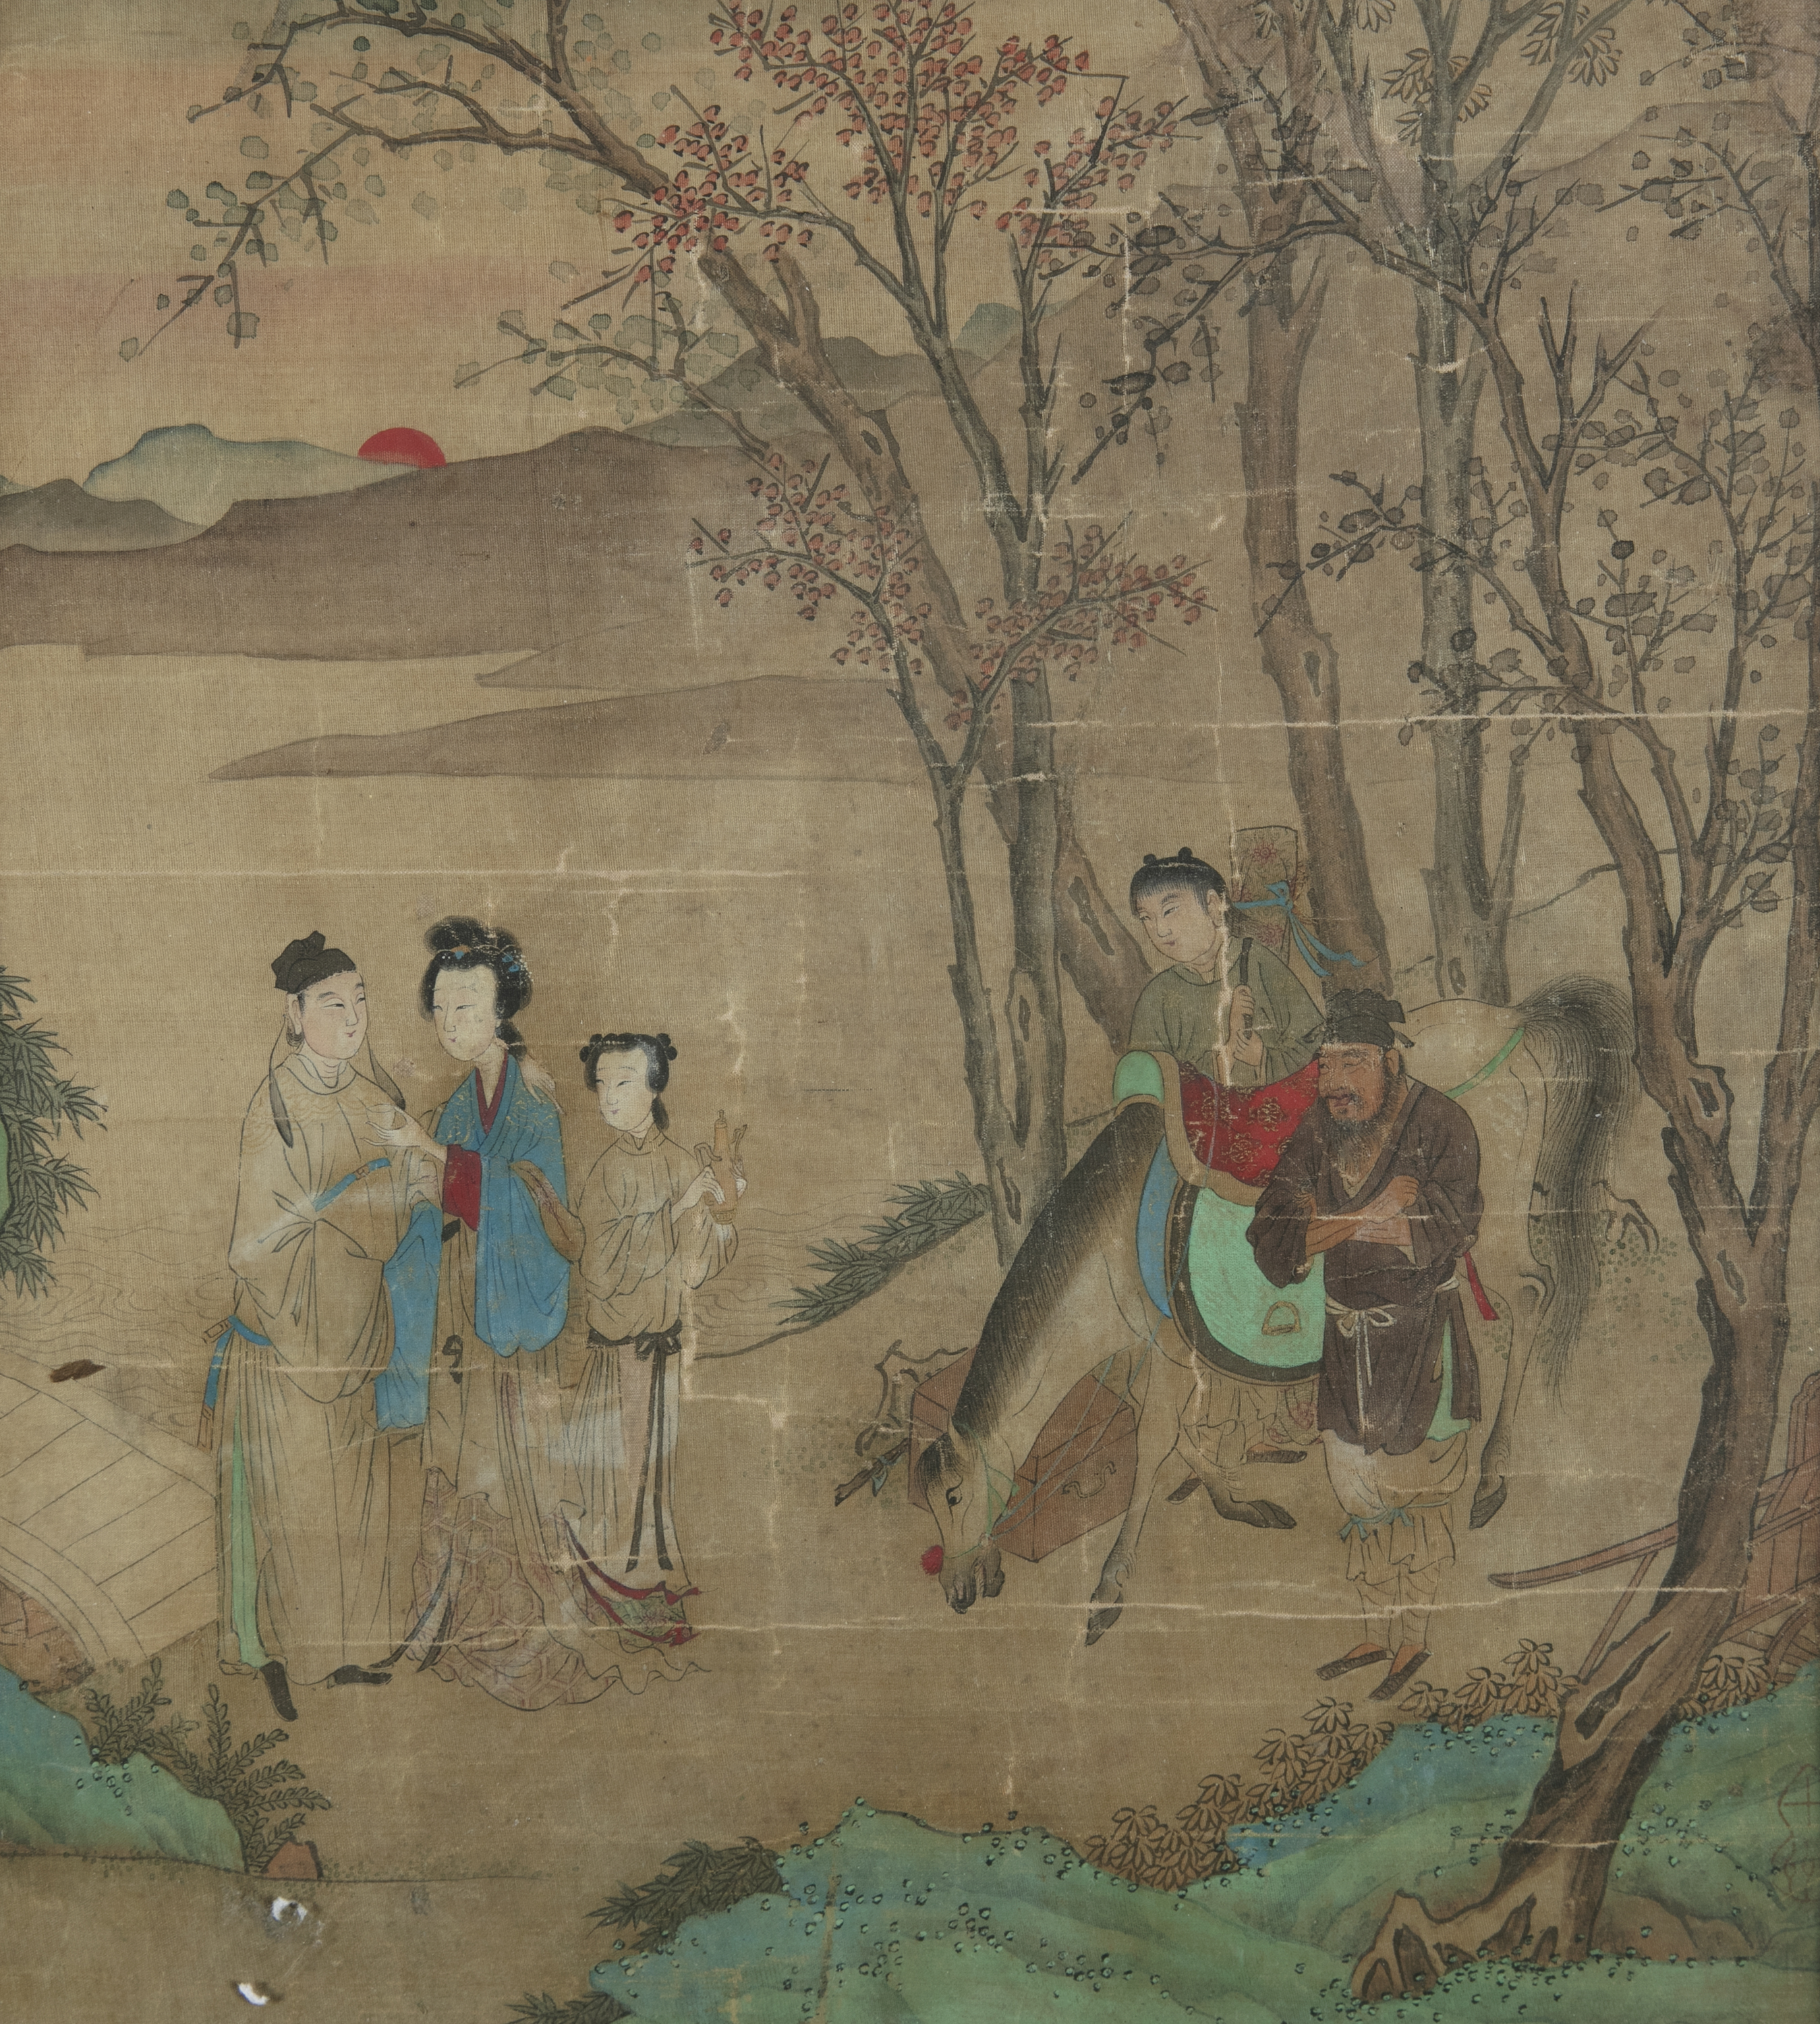 CHINESE SCHOOL, SEAL OF QIU YING 仇英 (1494-1552) Lady and attendants in a landscape at dawn